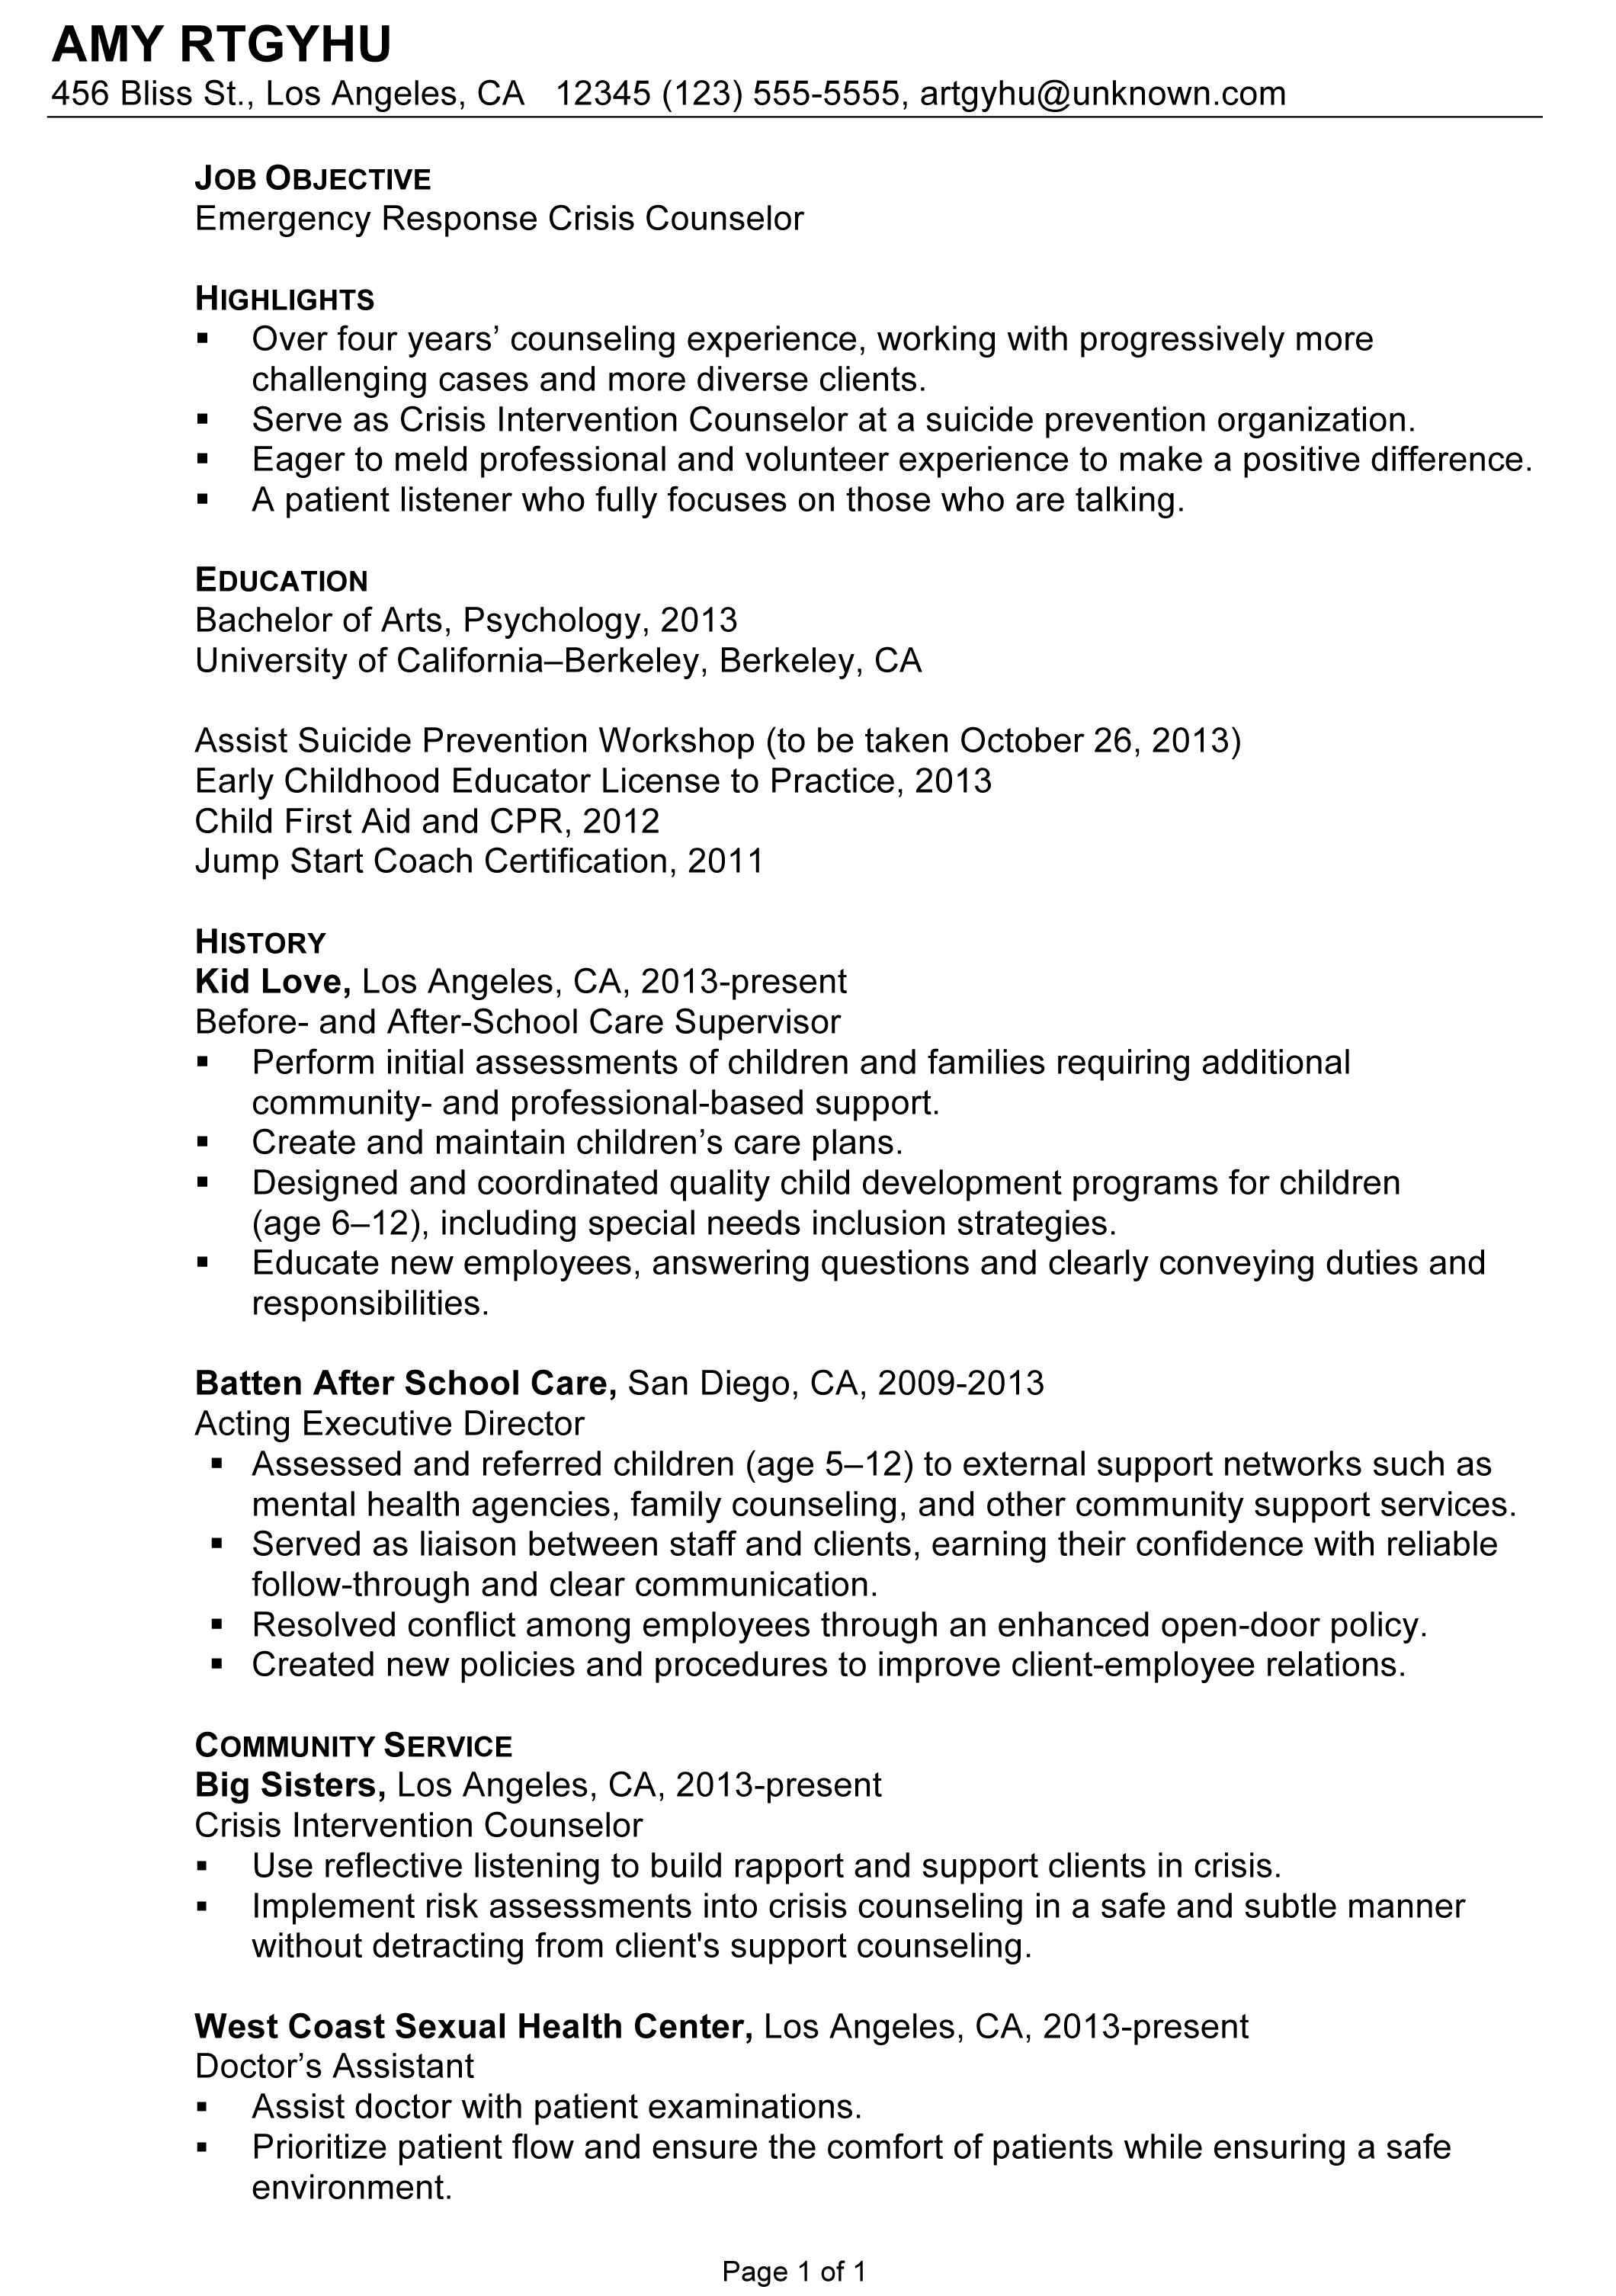 Best Resumes Examples Chronological Resume Sample Emergency Response Crisis Counselor